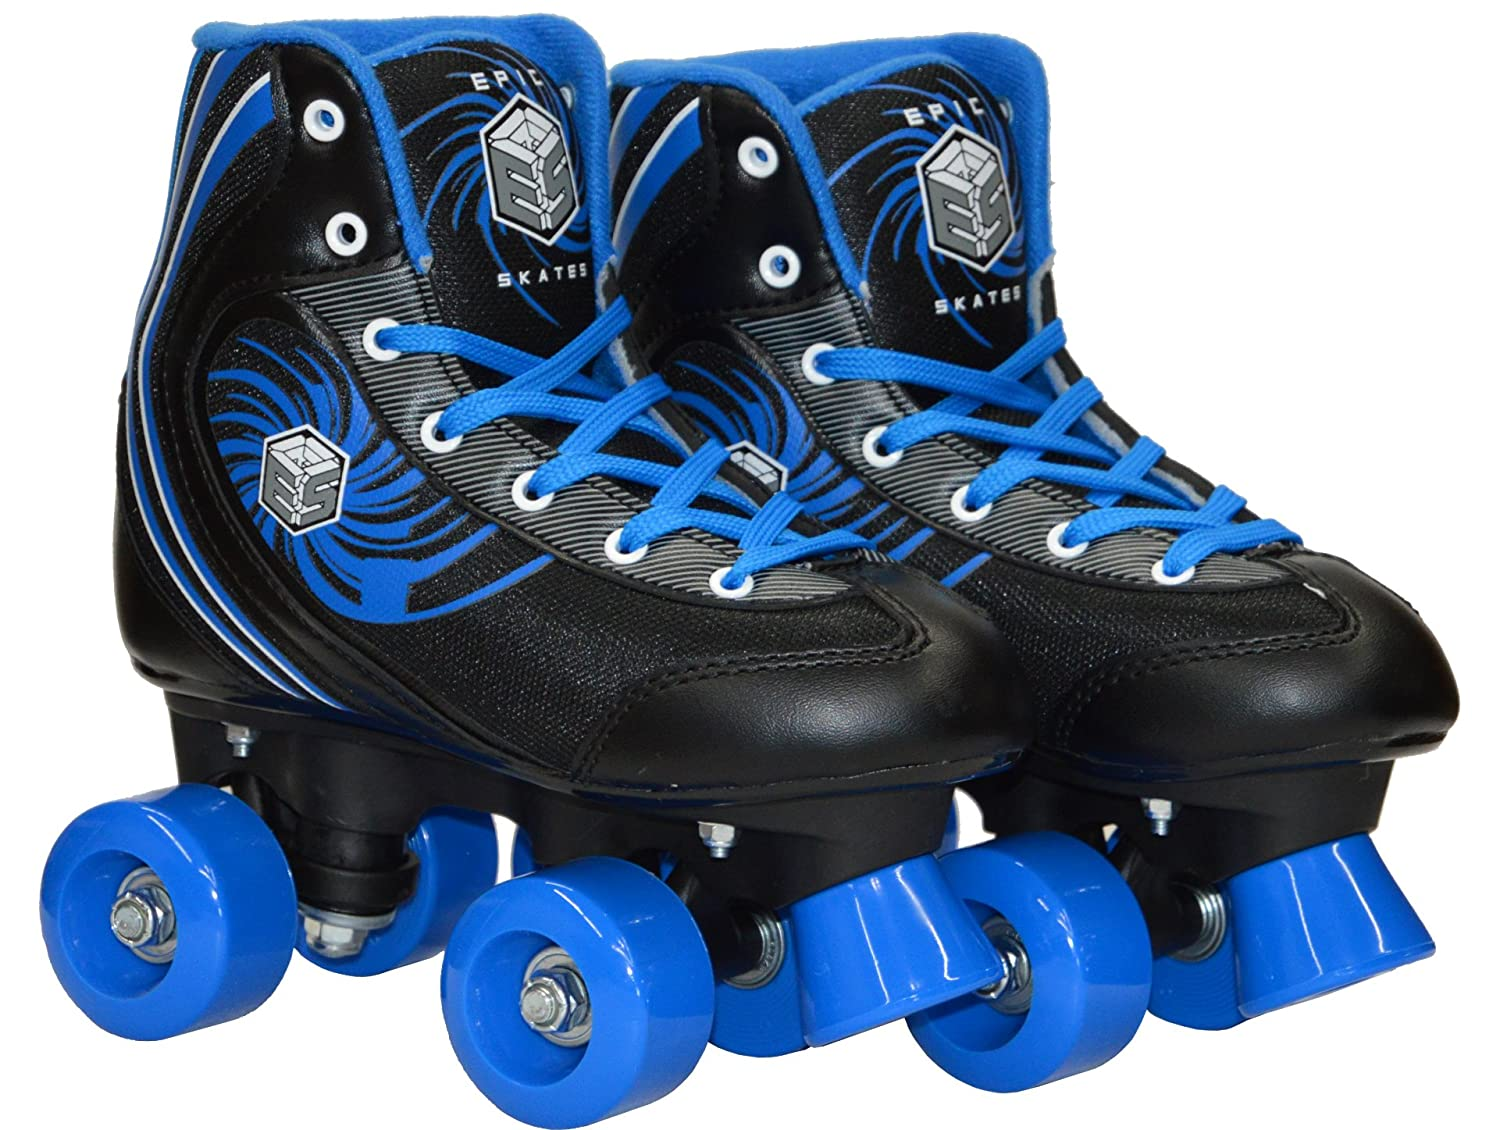 New Epic Rock Candy Quad Roller Skate 4Pc. Bundle w Skate Bag Safety Pads